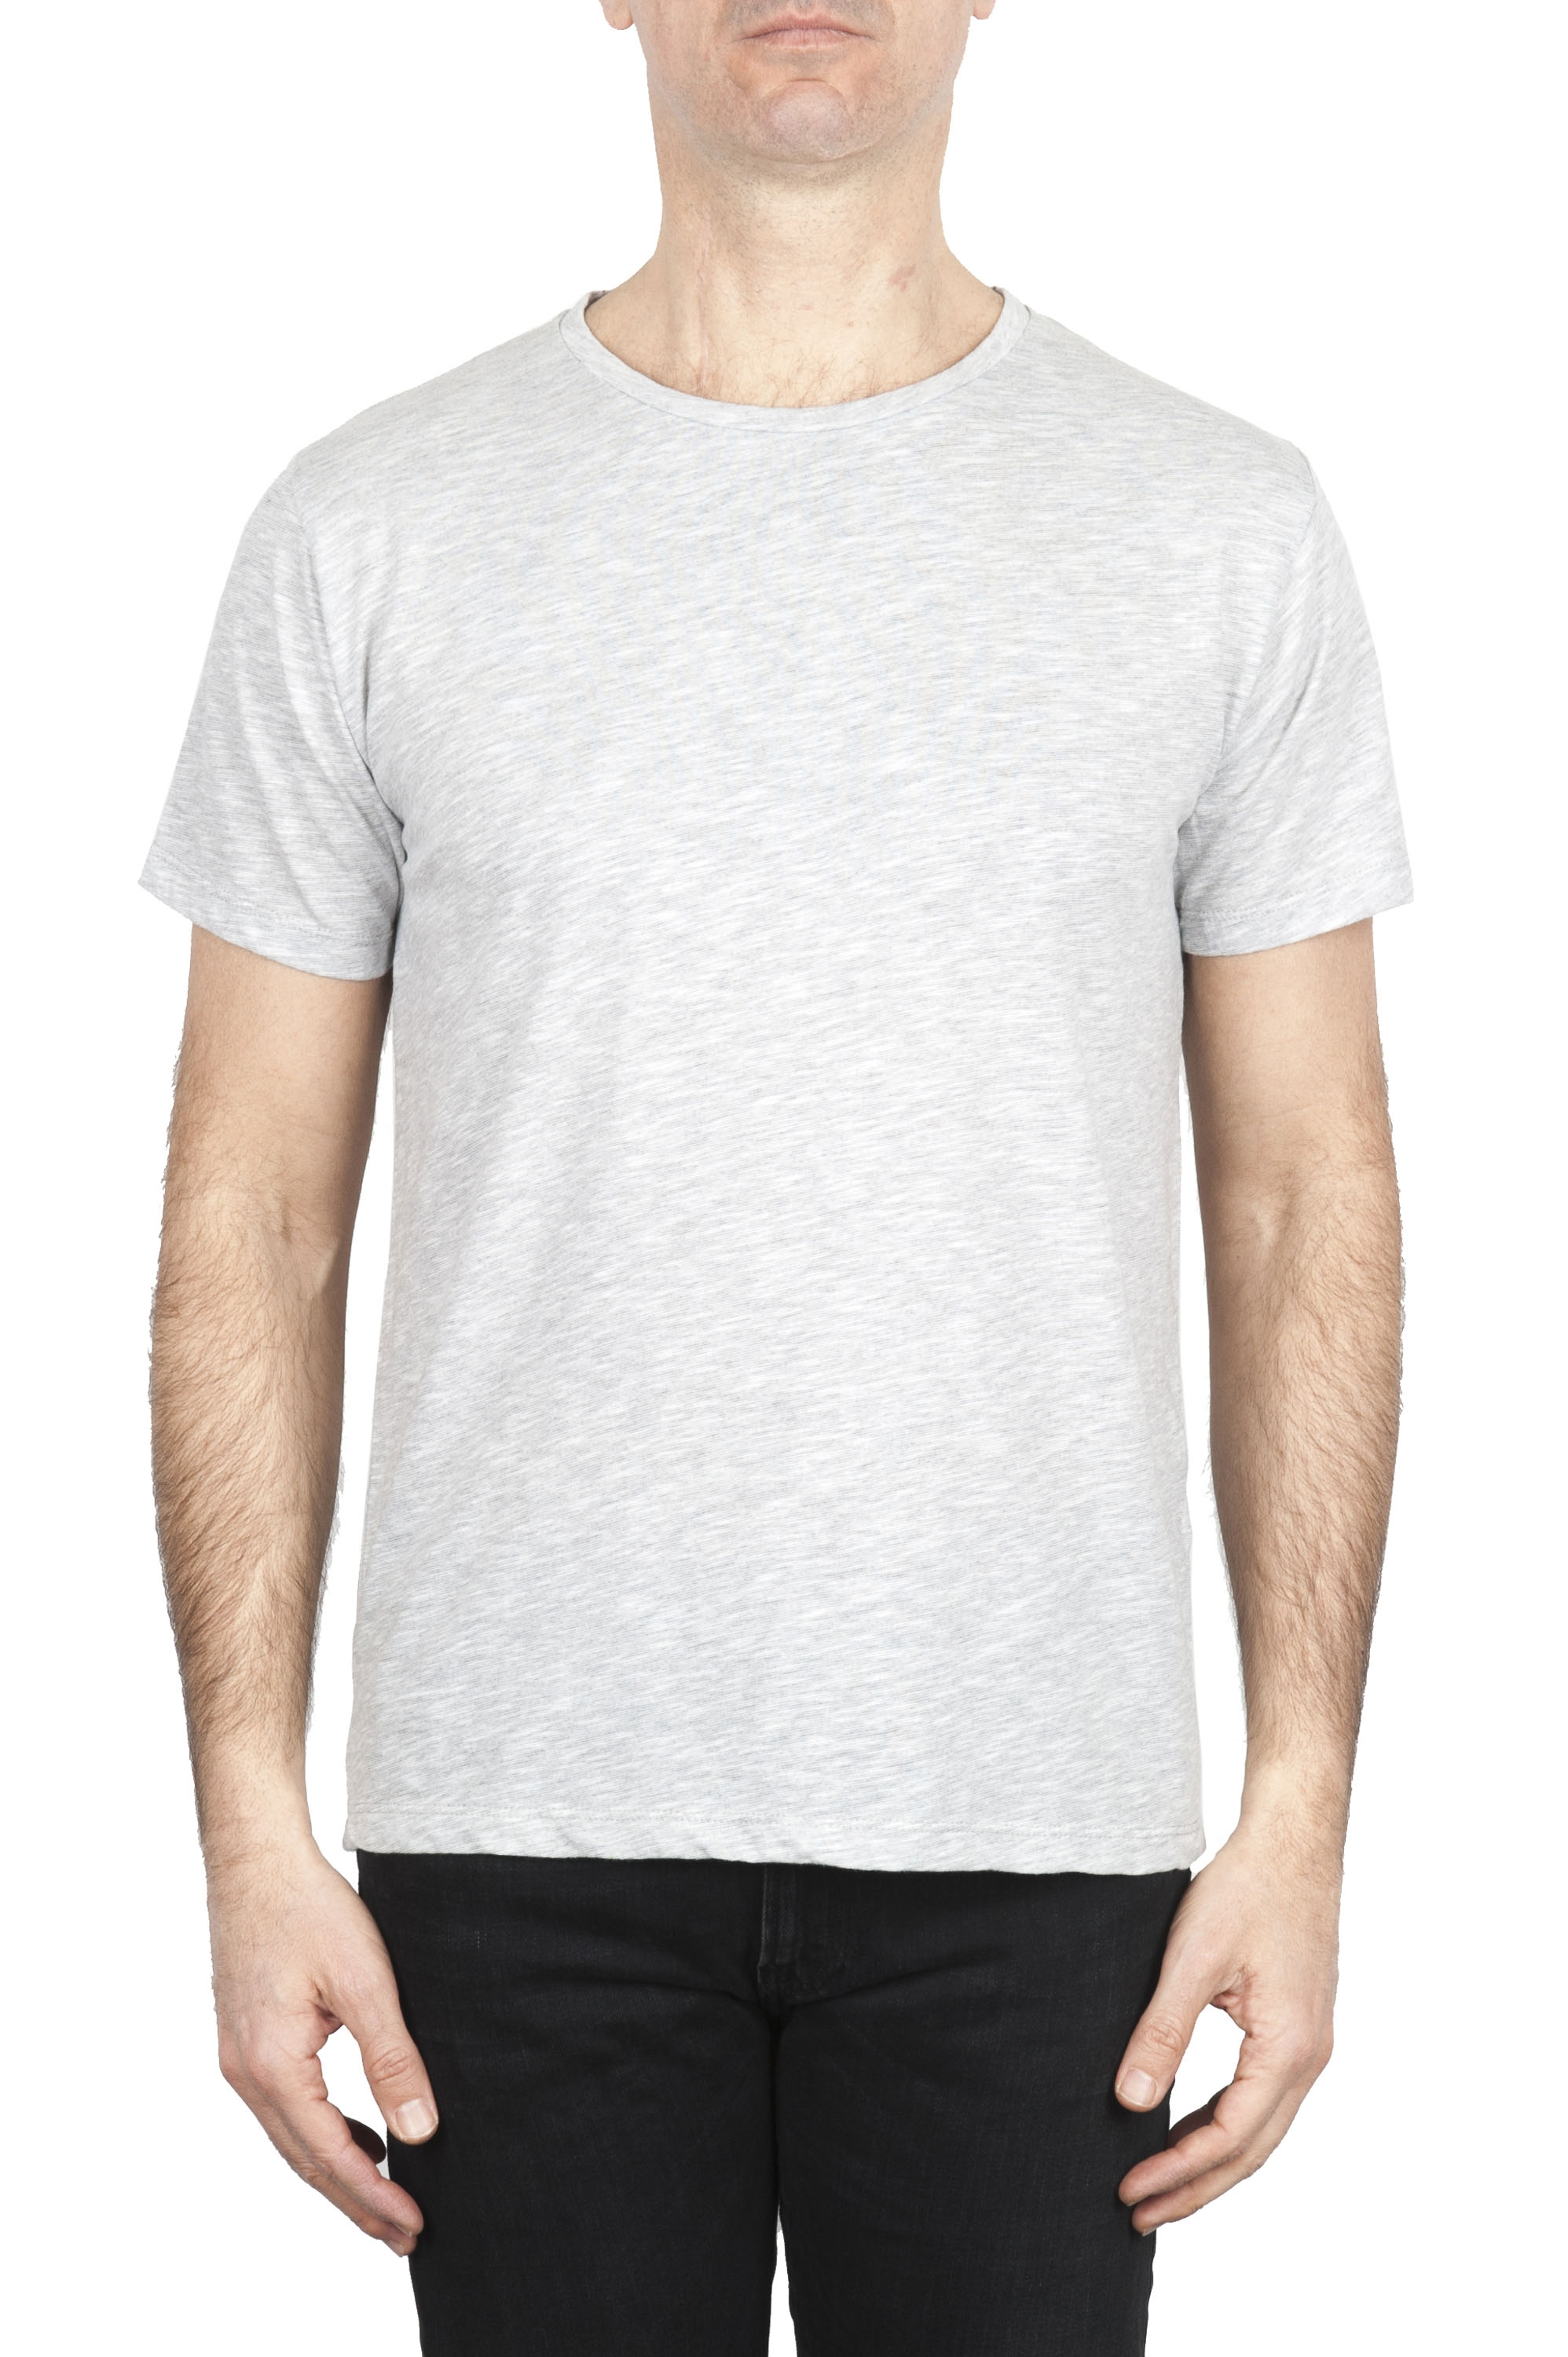 SBU 01646_19AW Flamed cotton scoop neck t-shirt melange grey 01